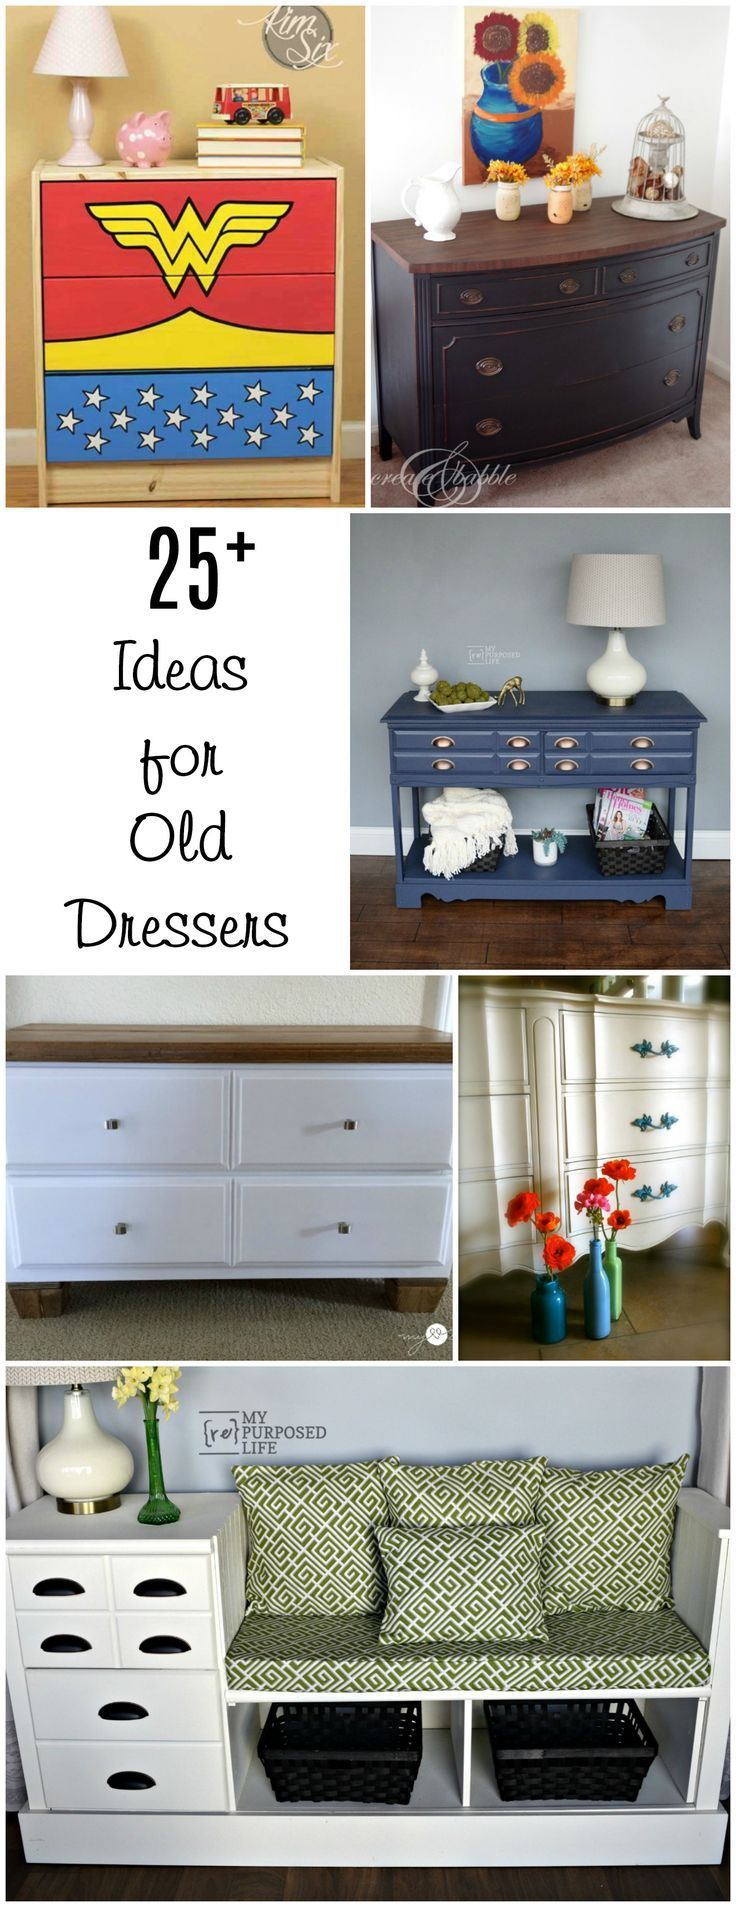 An old dresser is perfect for repurposed furniture projects and makeovers with paint & stencils. Ideas for that old dresser you have waiting in storage.